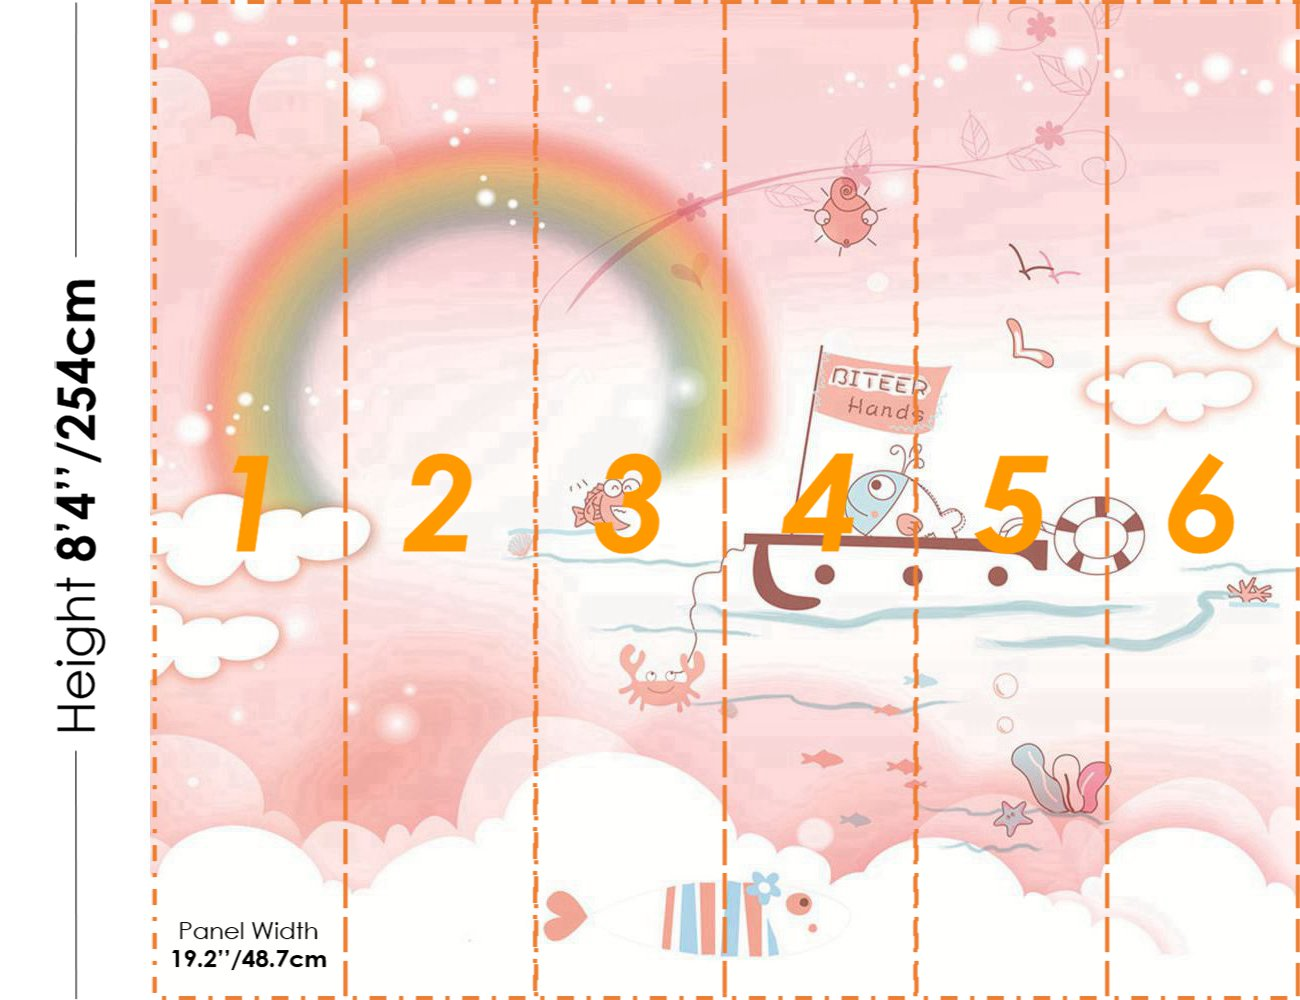 STDM30315 Cartoon Fish on a Boat in the Sea with a Colorful Rainbow Mural Wallpaper by SJK